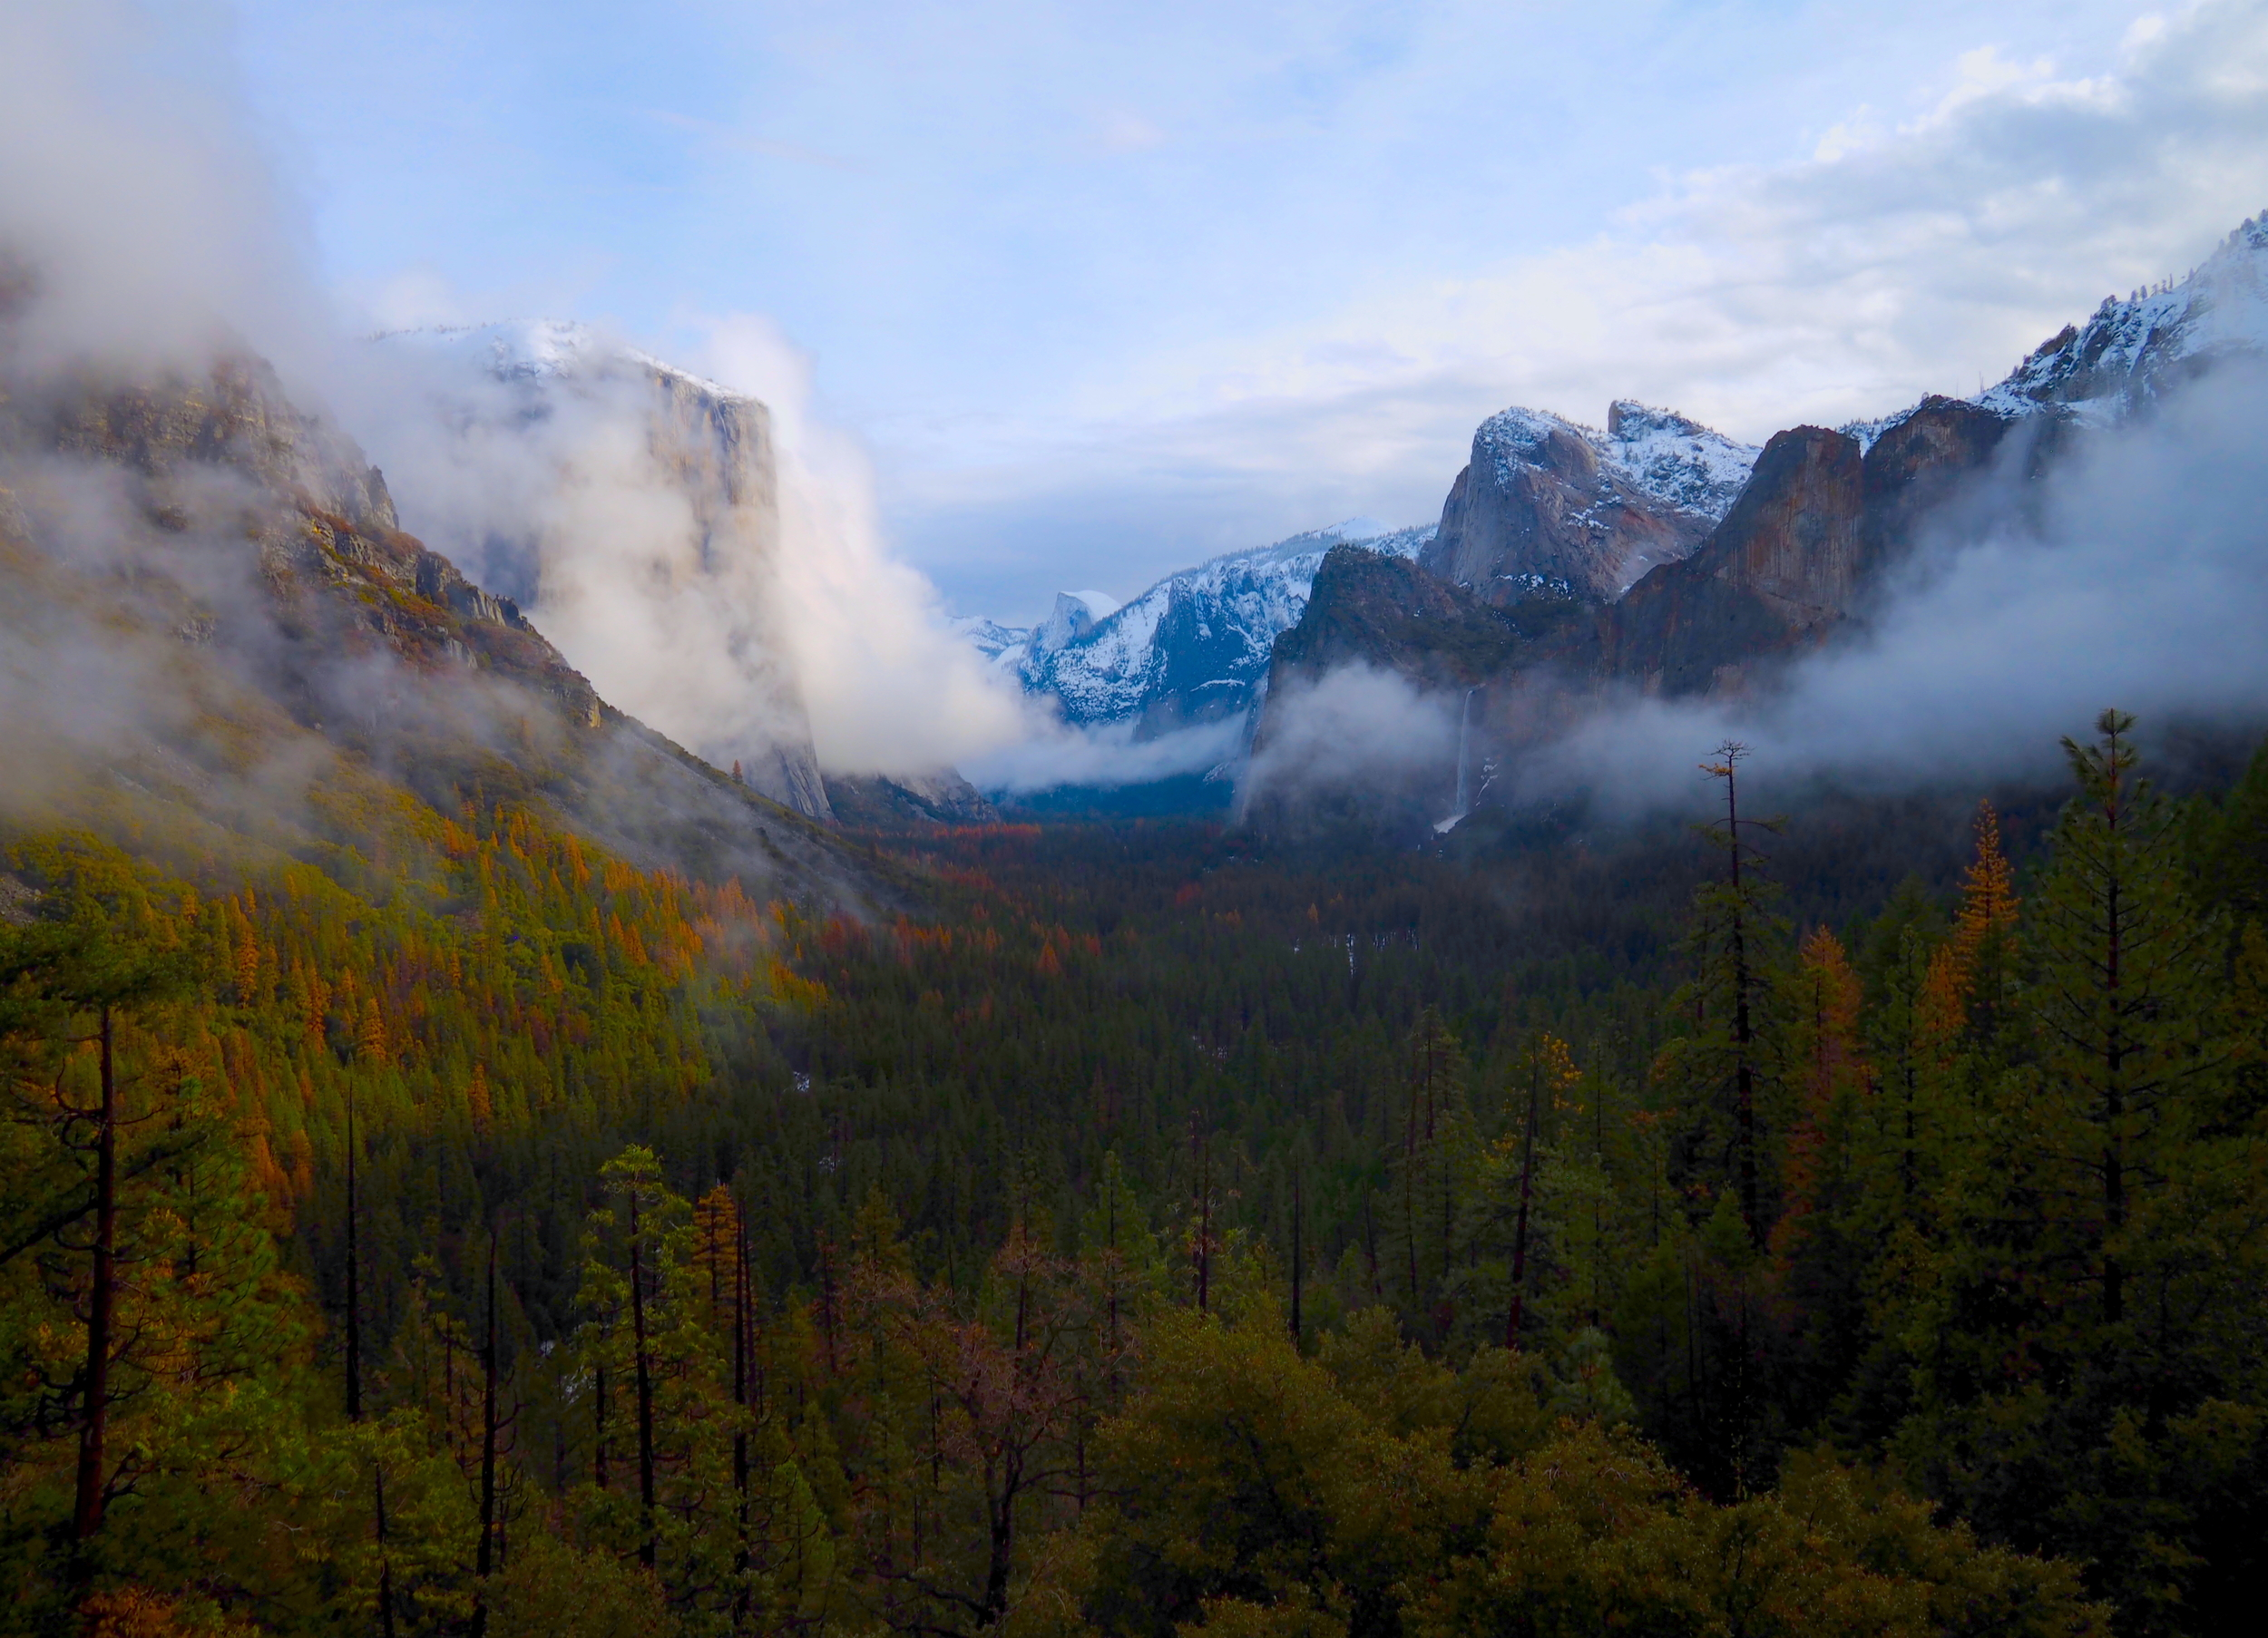 Morning Mist, Tunnel View, Yosemite National Park